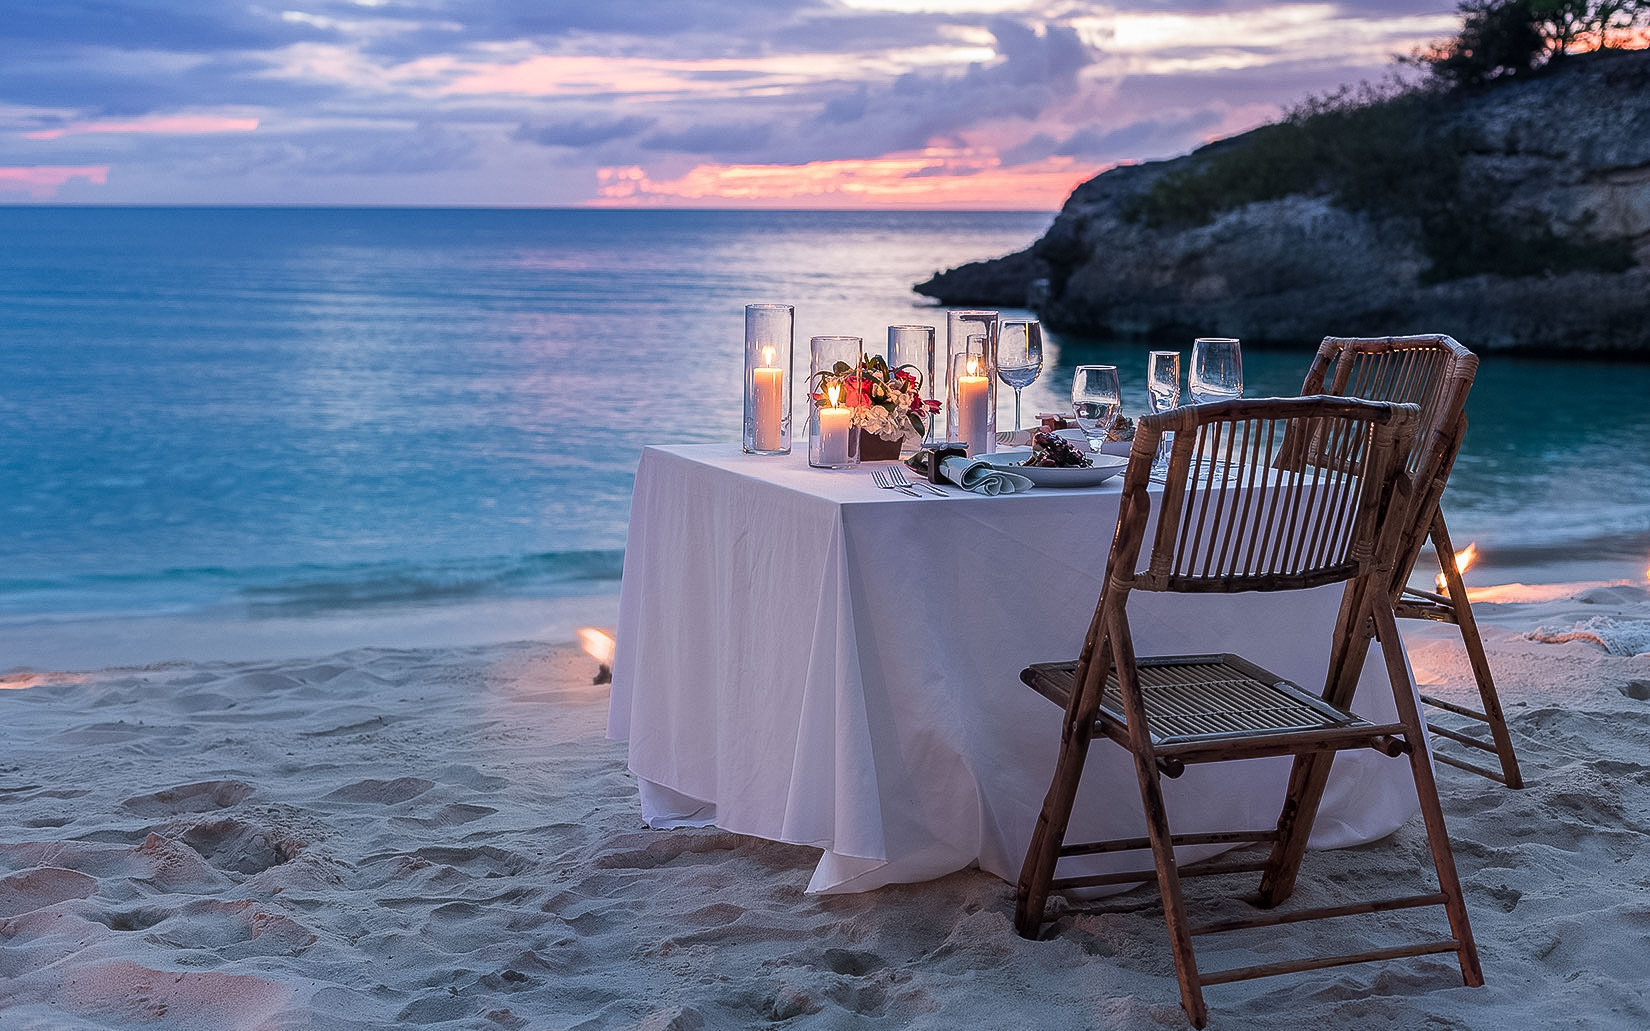 small table with candles and table settings for two on beach at sunset